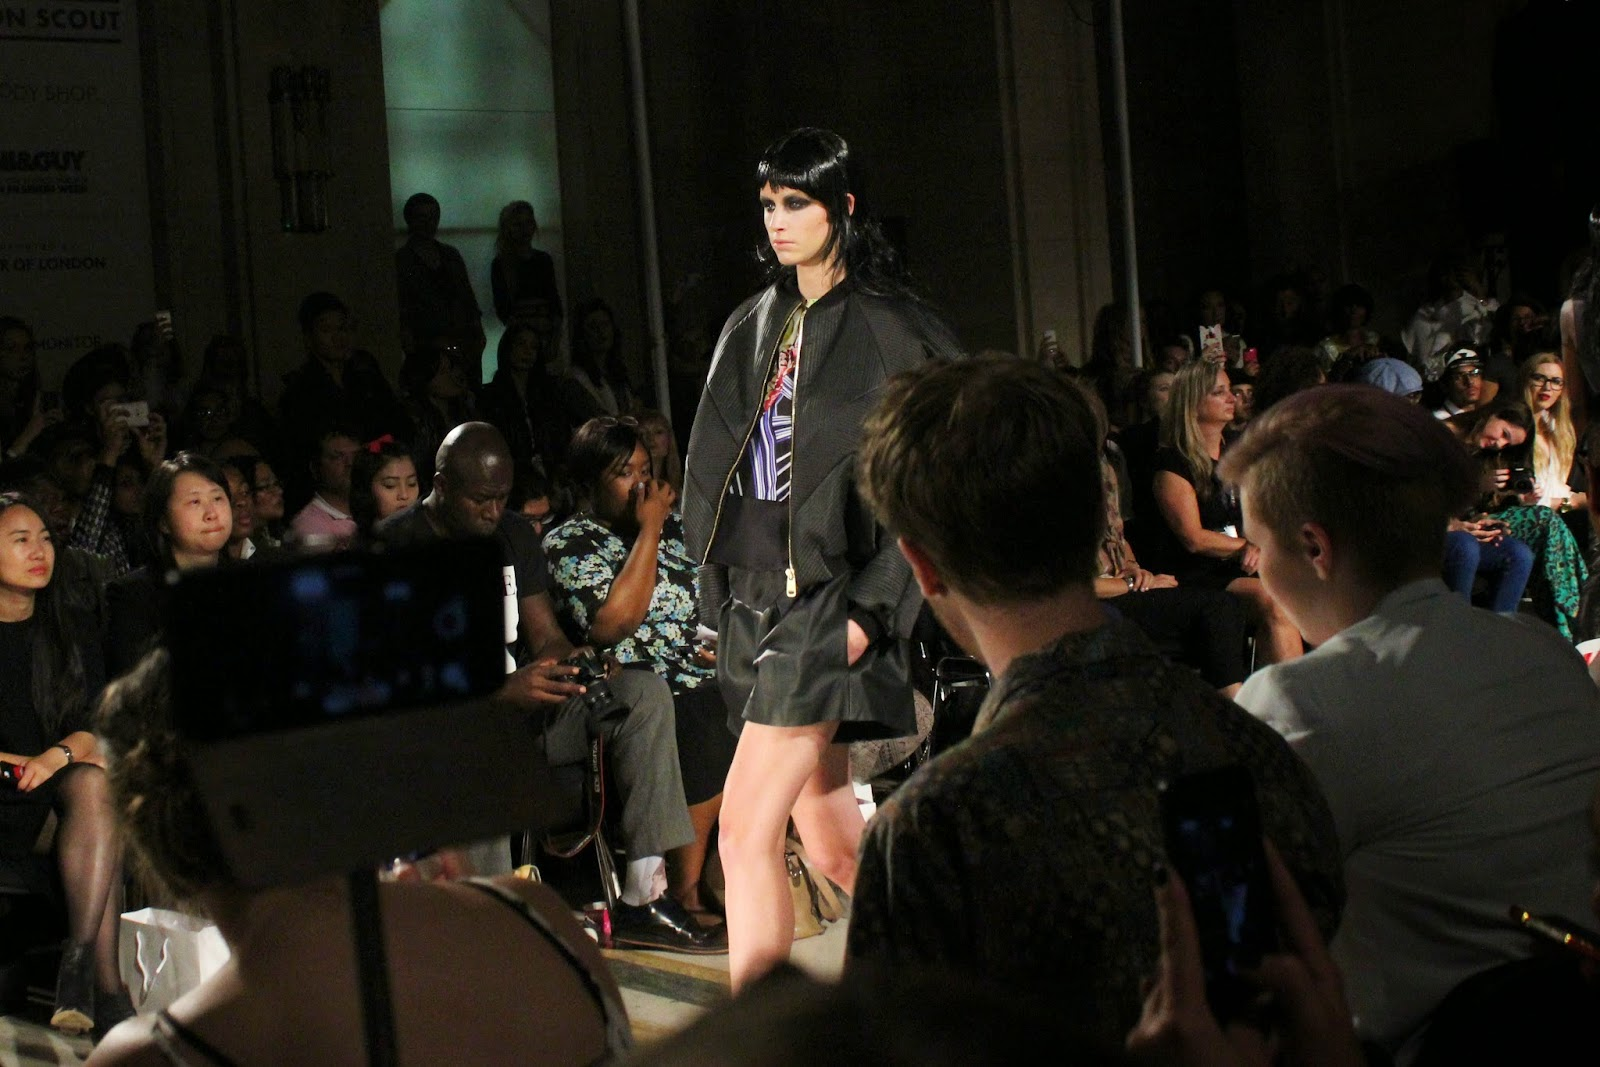 london-fashion-week-2014-lfw-spring-summer-2015-blogger-fashion-Dora-Abodi-catwalk-models-freemasons hall-fashion-scout-top-skirt-jacket